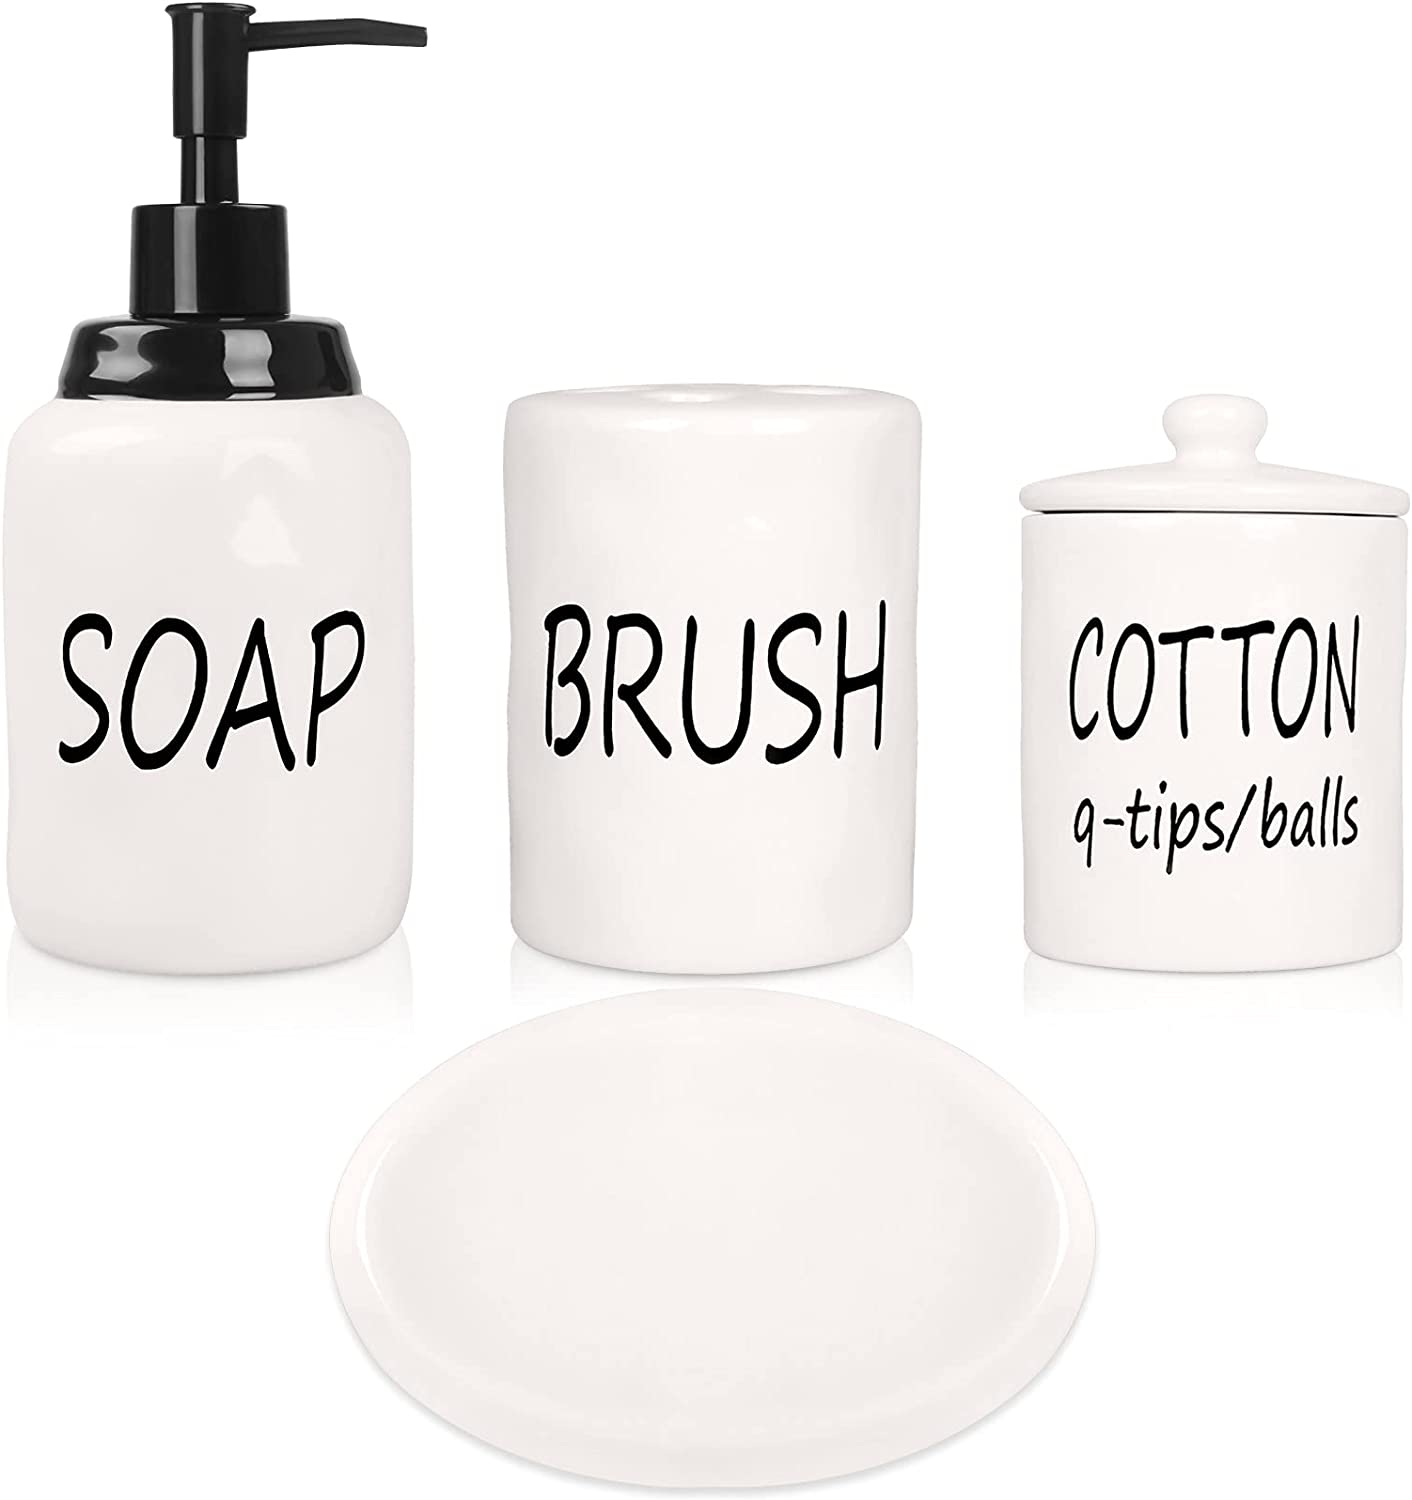 Gails Willing Bathroom Accessories Set, Ceramics Farmhouse Bathroom Decor Accessory Completes with Soap Dispenser, Cotton Jar, Vanity Tray, Toothbrush Holder (White)